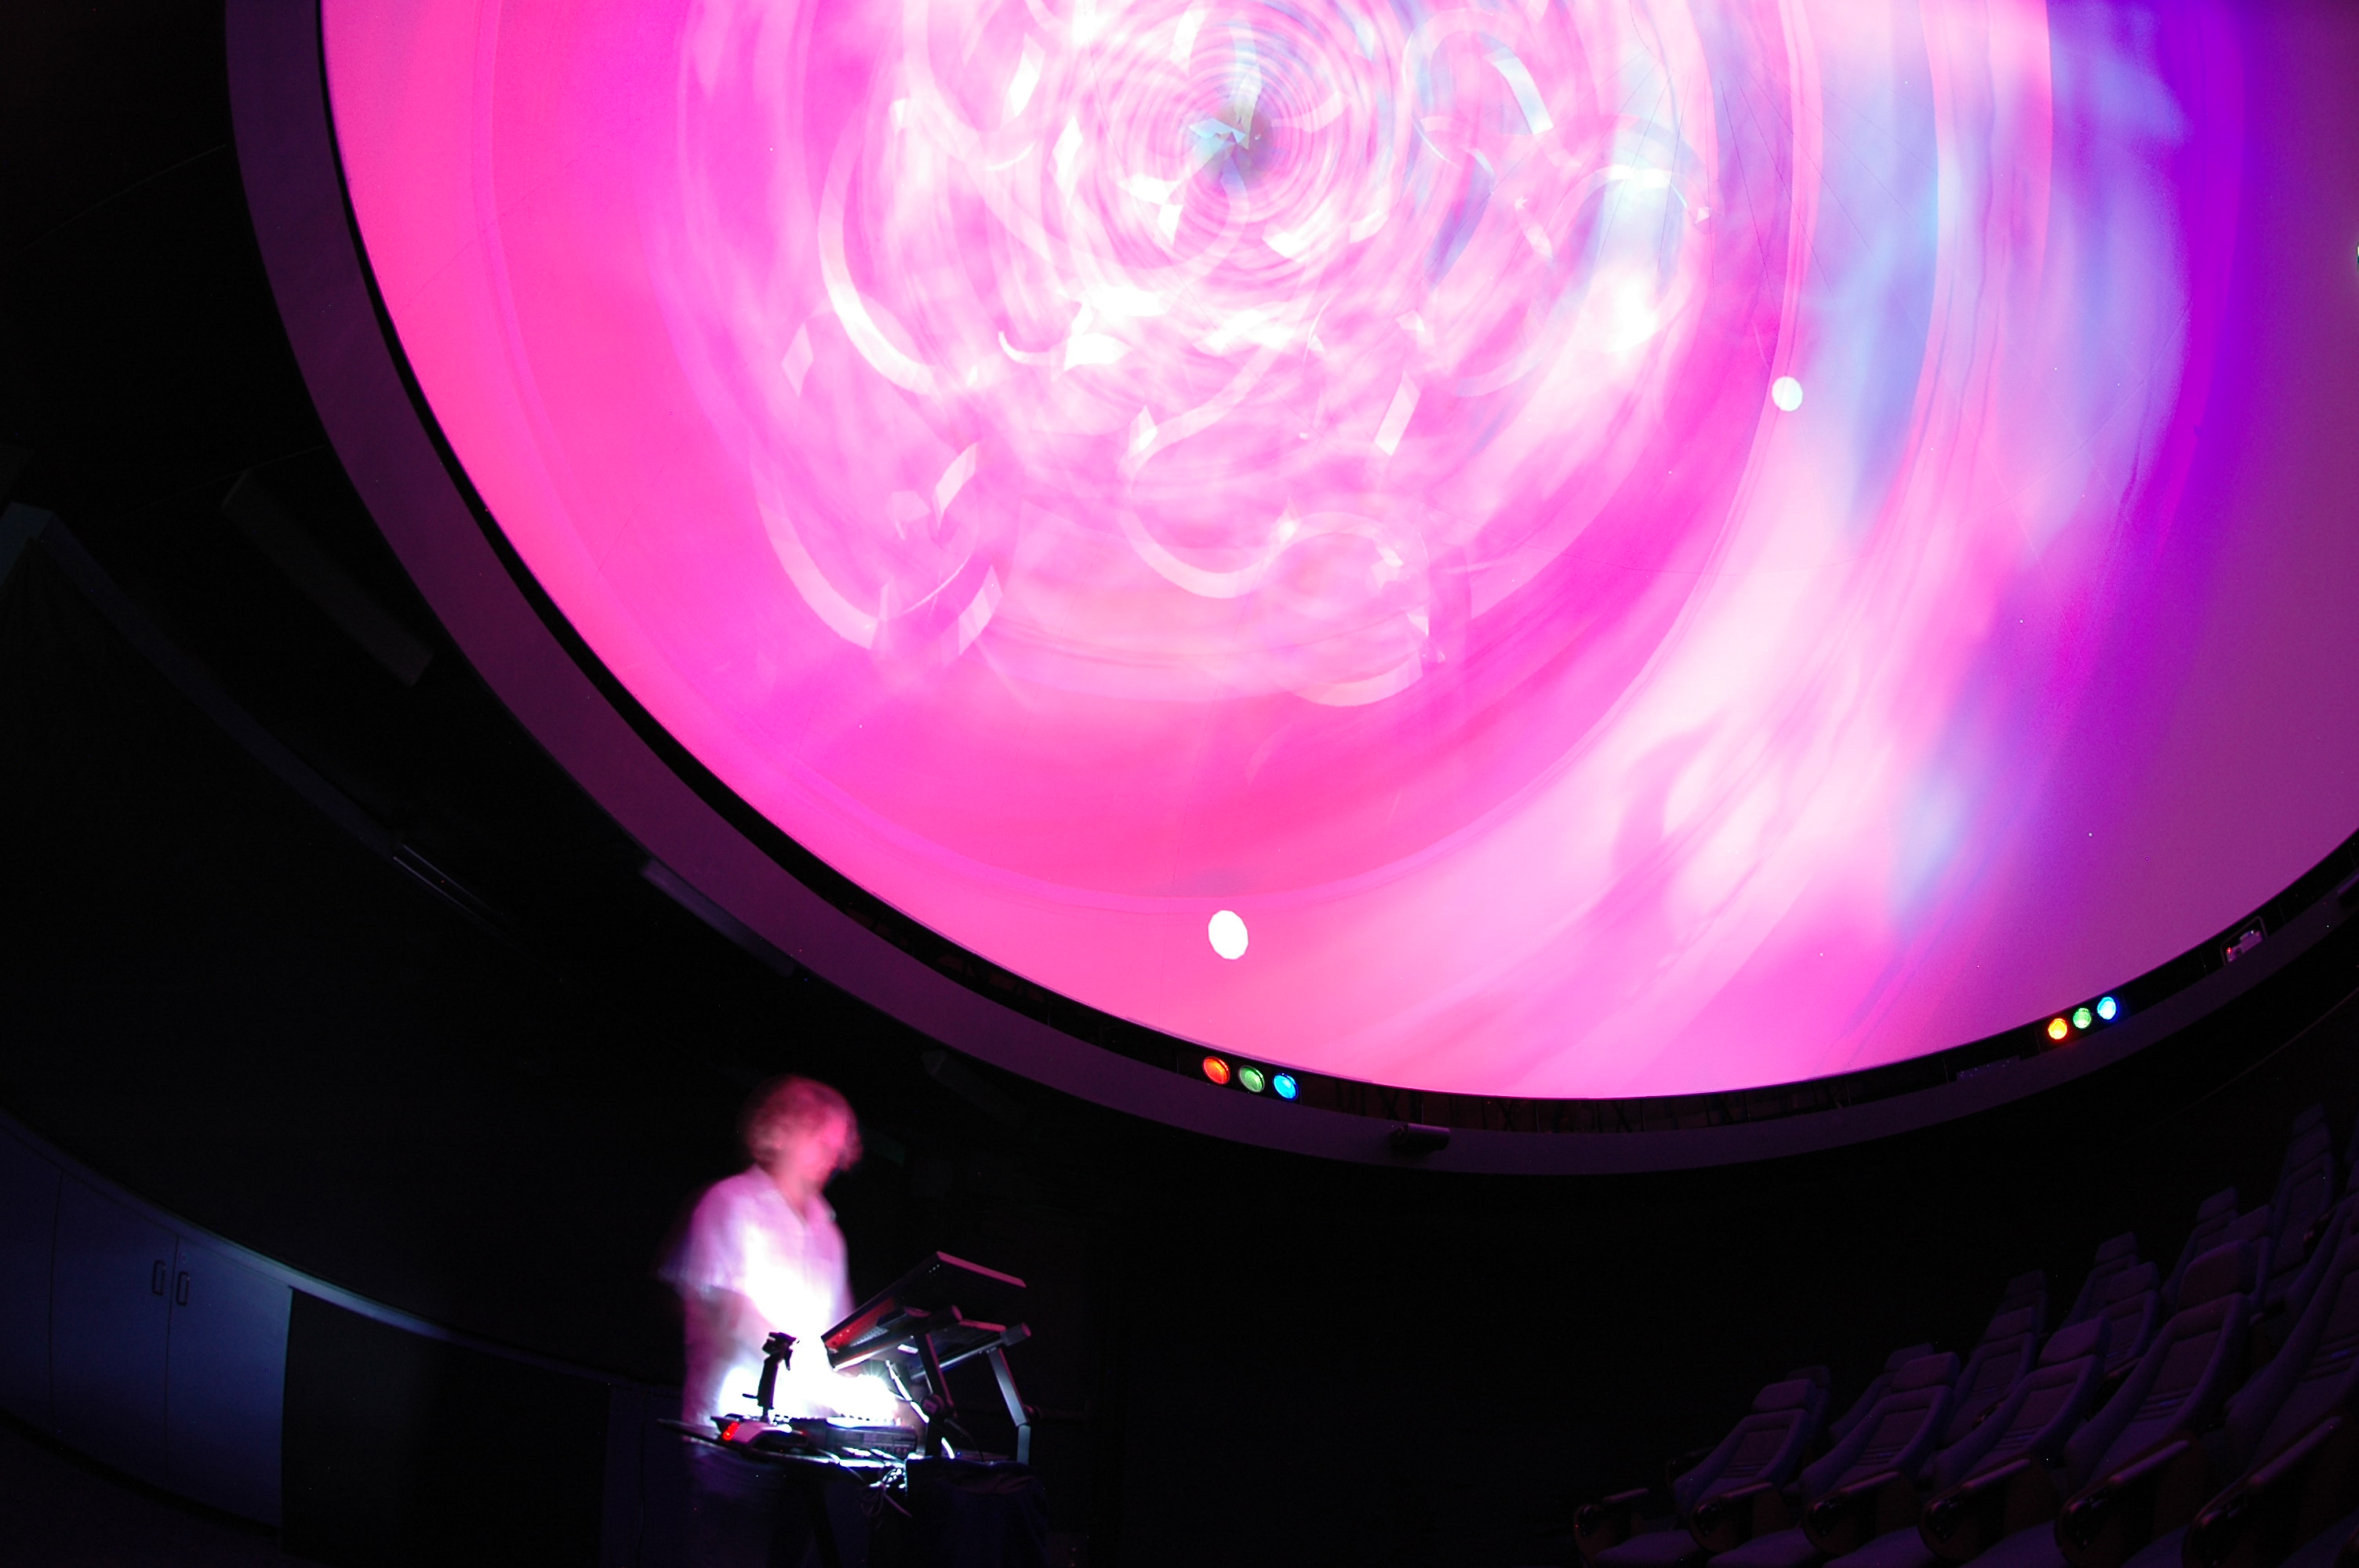 J-Walt performing at the Glendale Planetarium